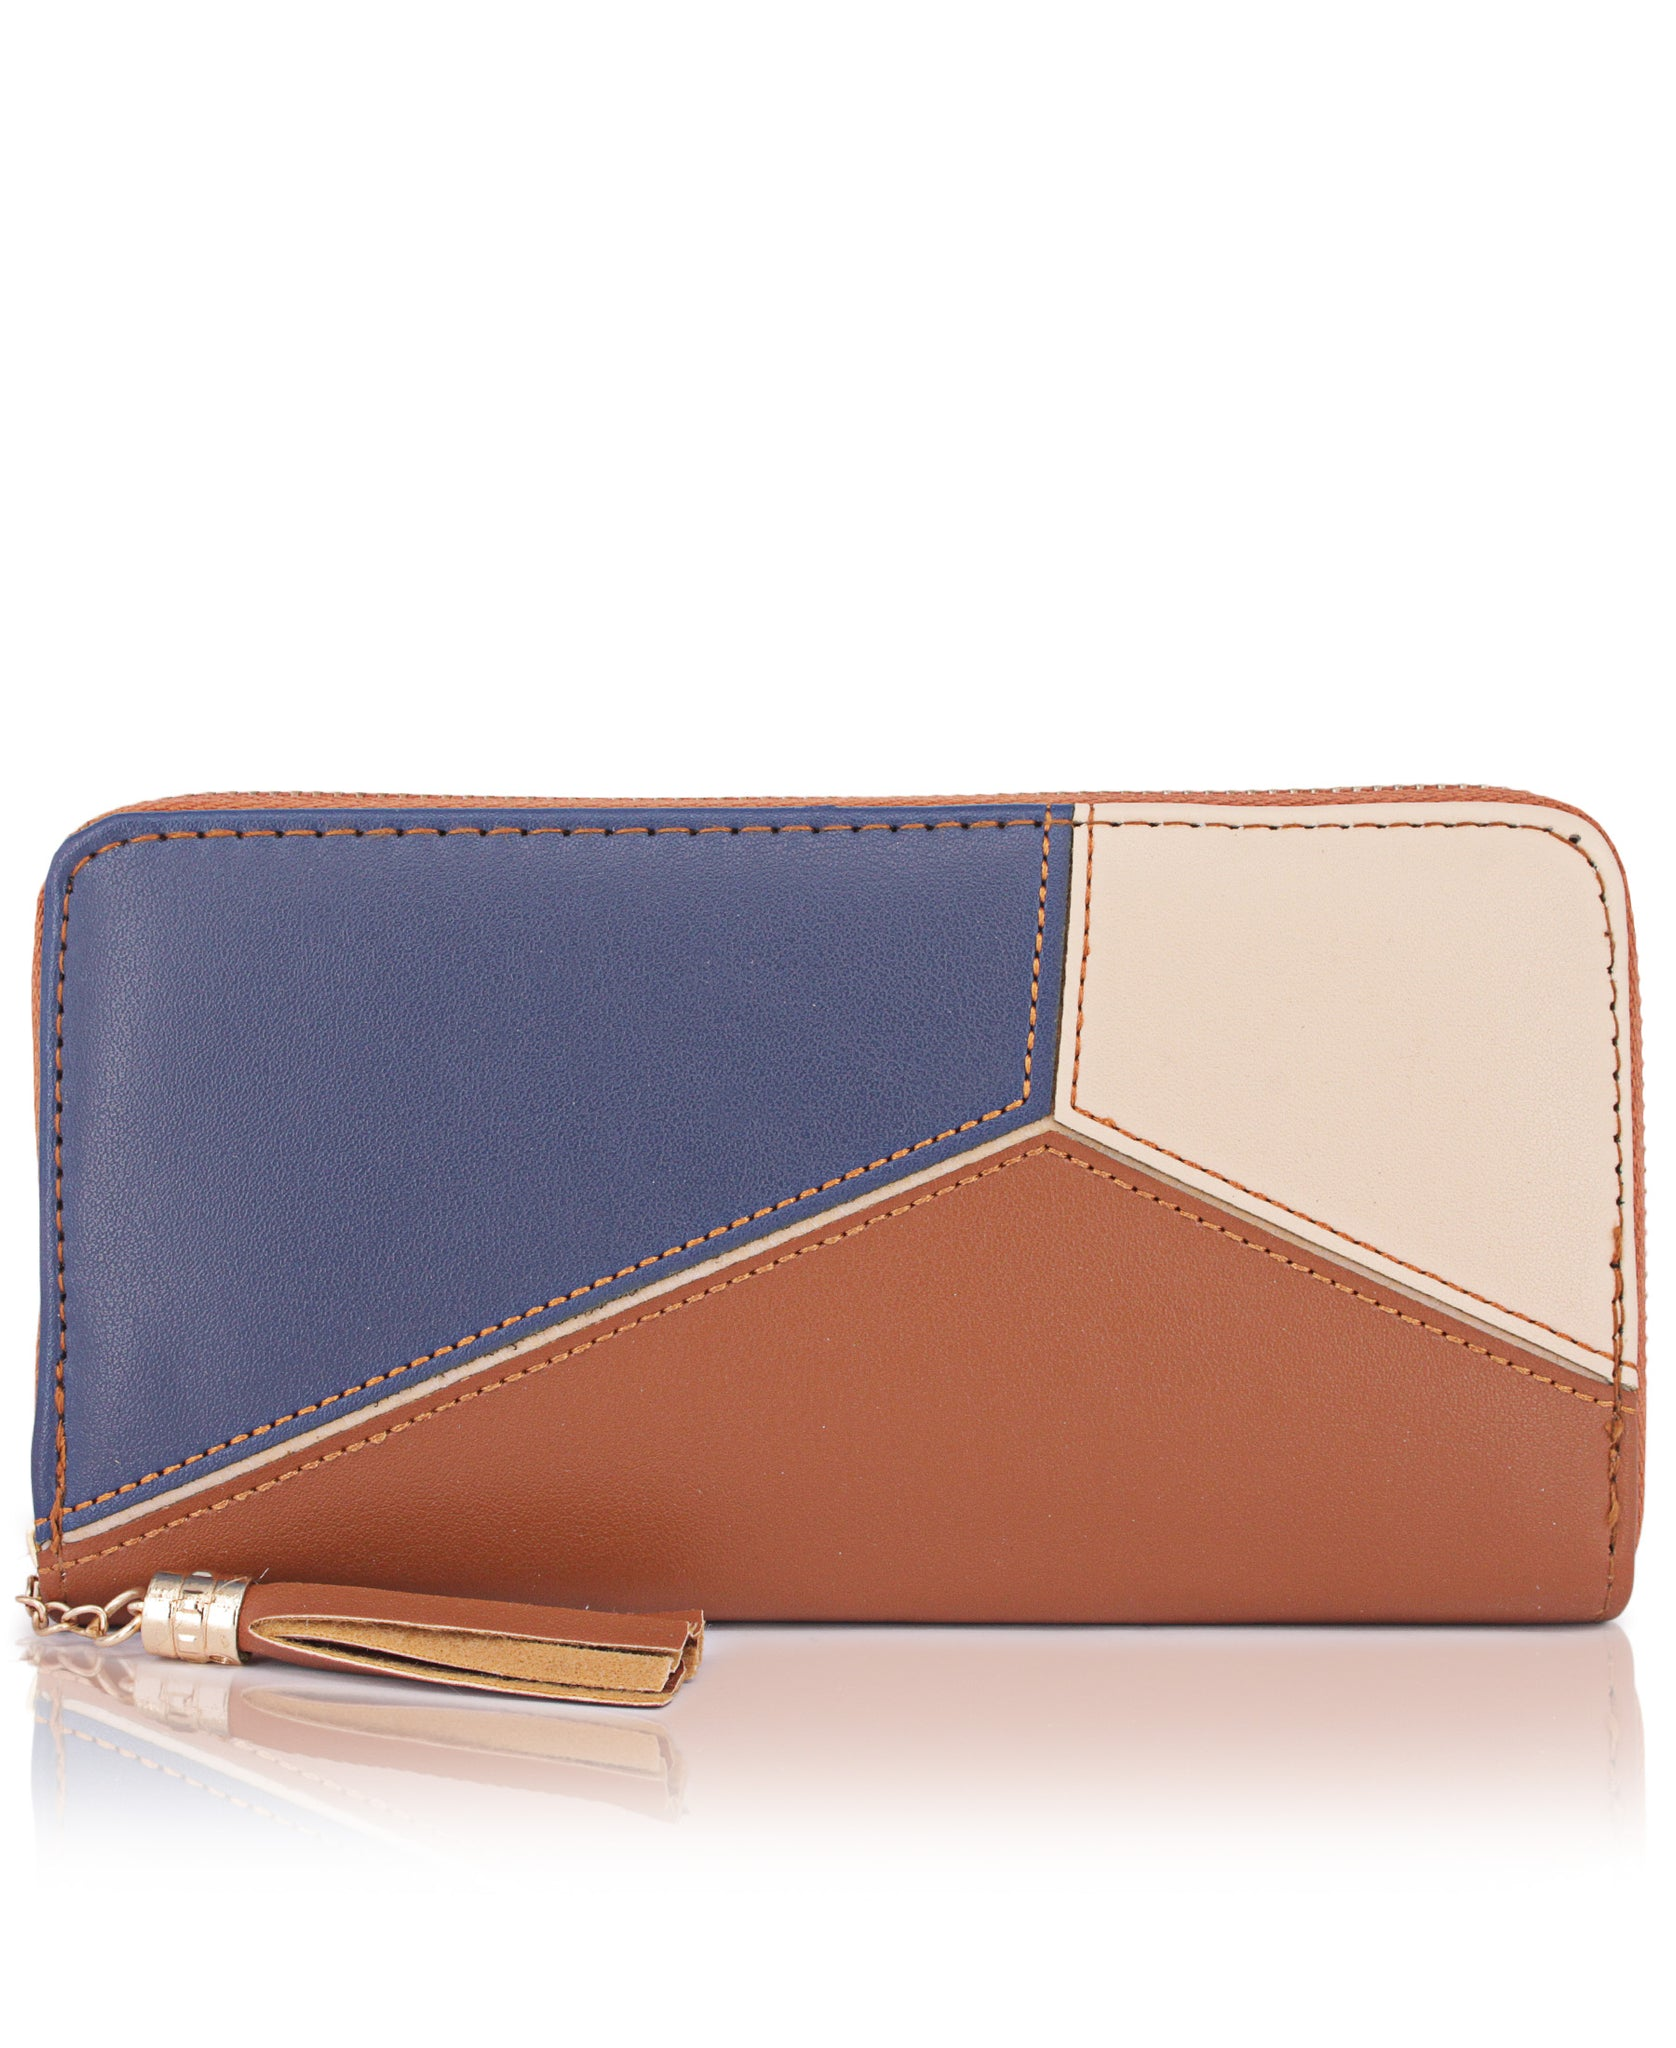 Zip Around Wallet - Tan